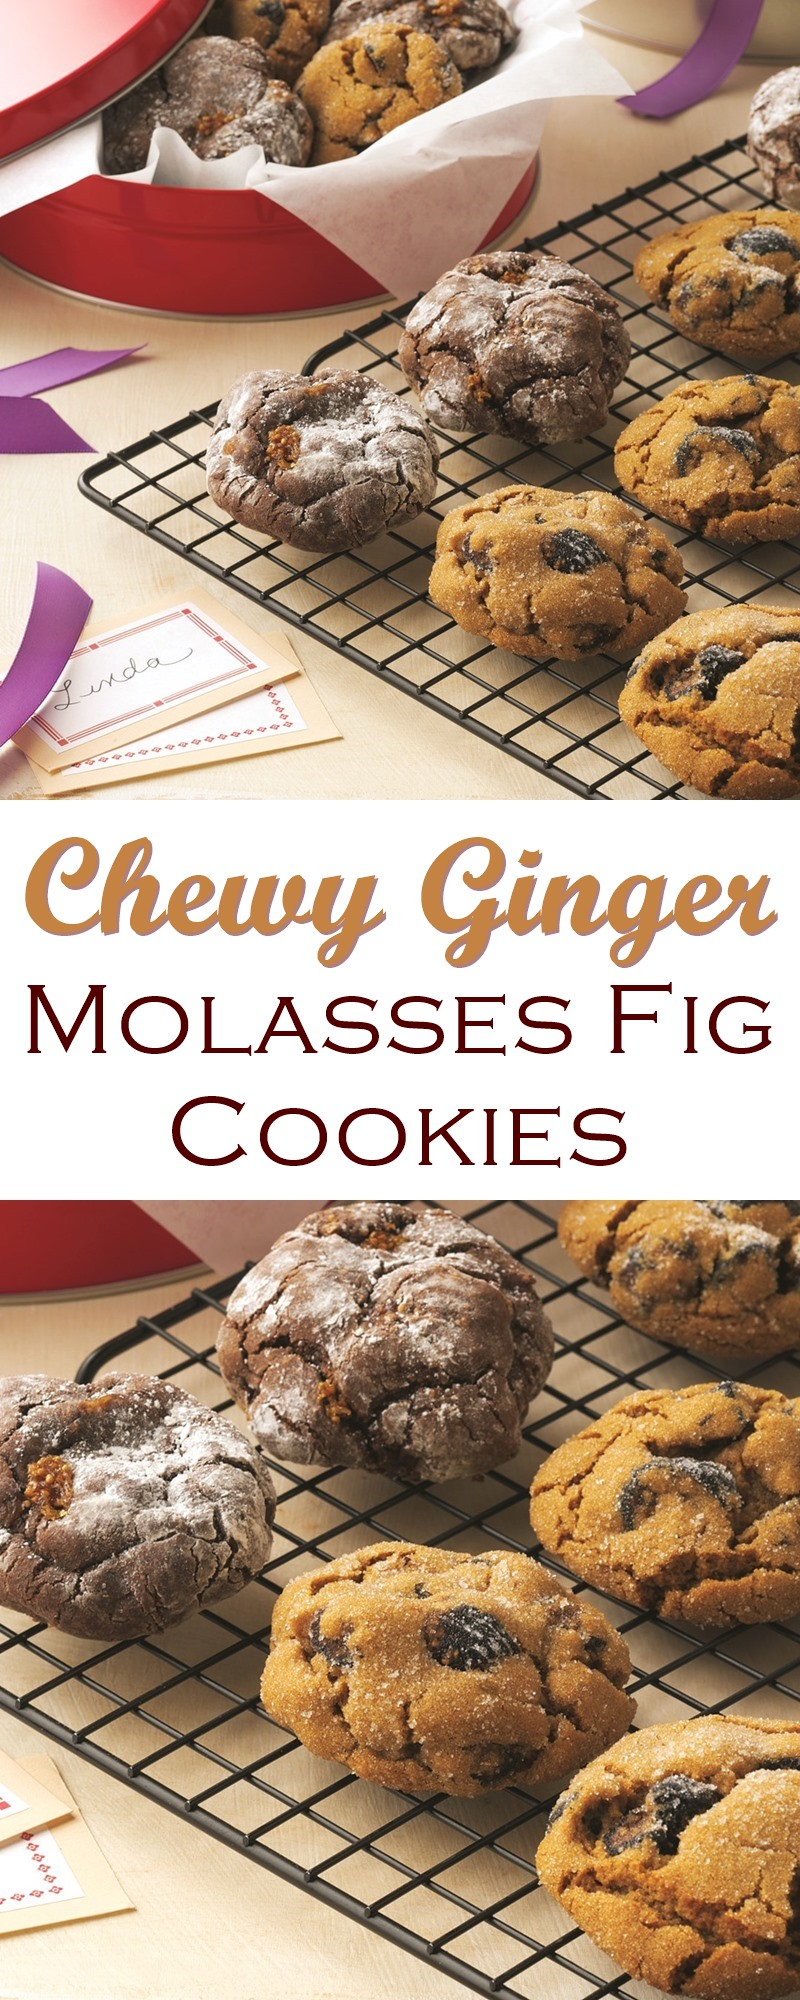 Chewy Molasses Cookies Recipe with Figs and Spices (Dairy-Free)